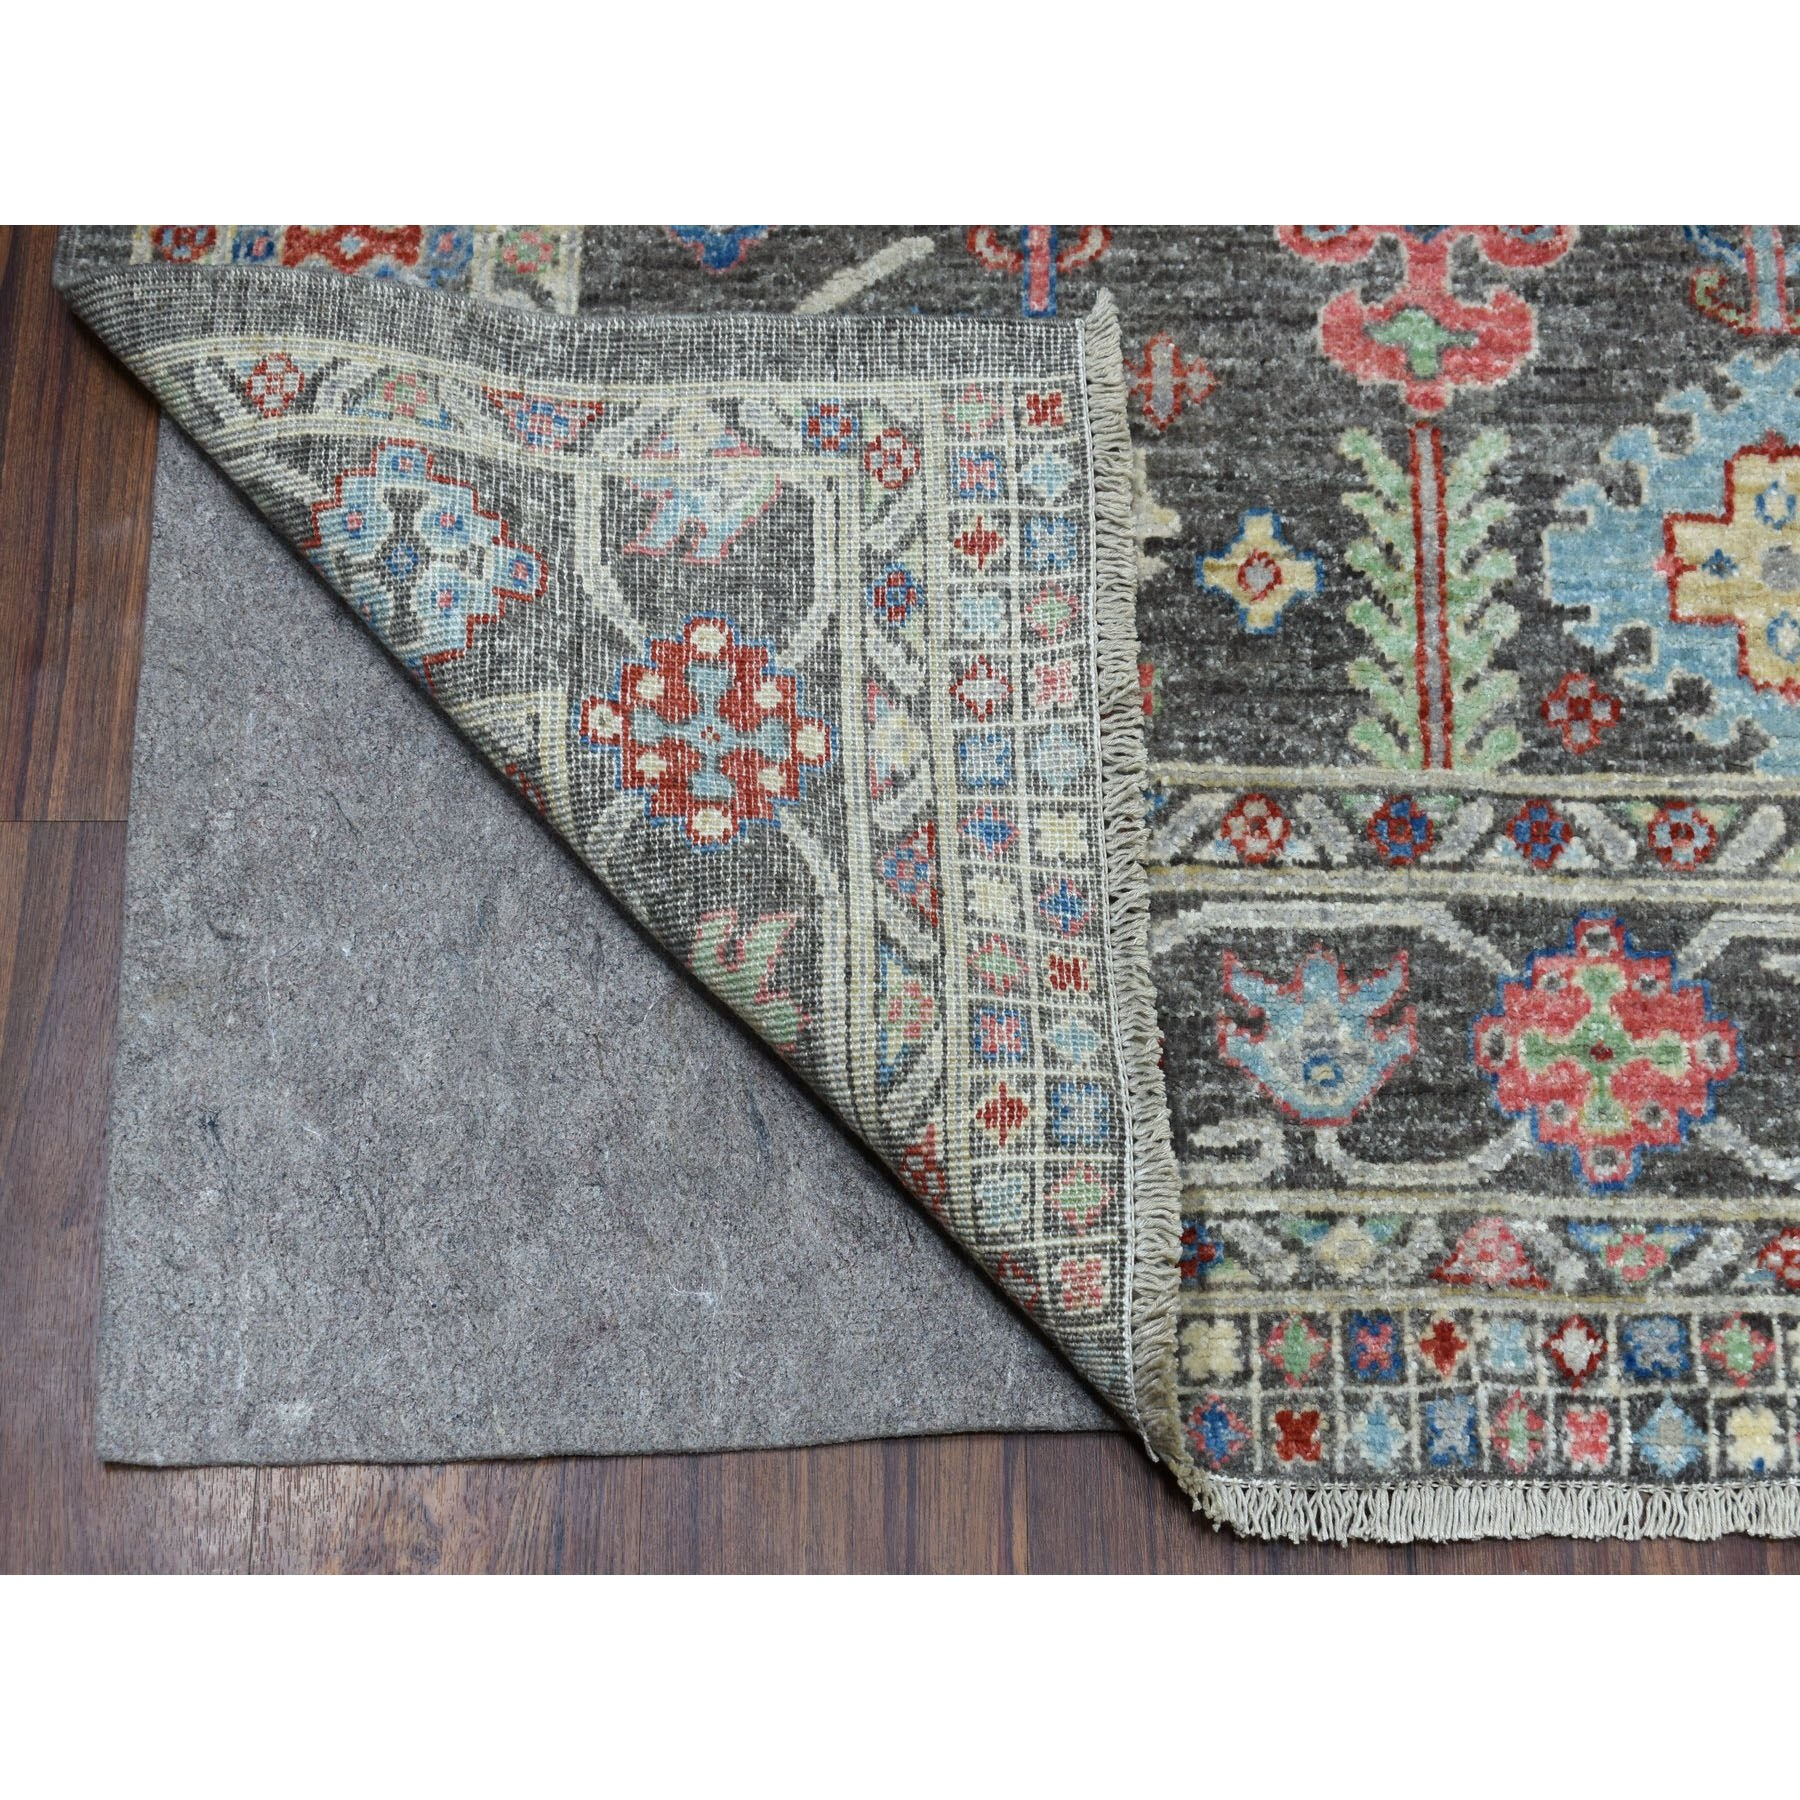 6-1 x8-8  Peshawar With Pop Of Color Ethnic Design Afghan Wool Hand Knotted Oriental Rug